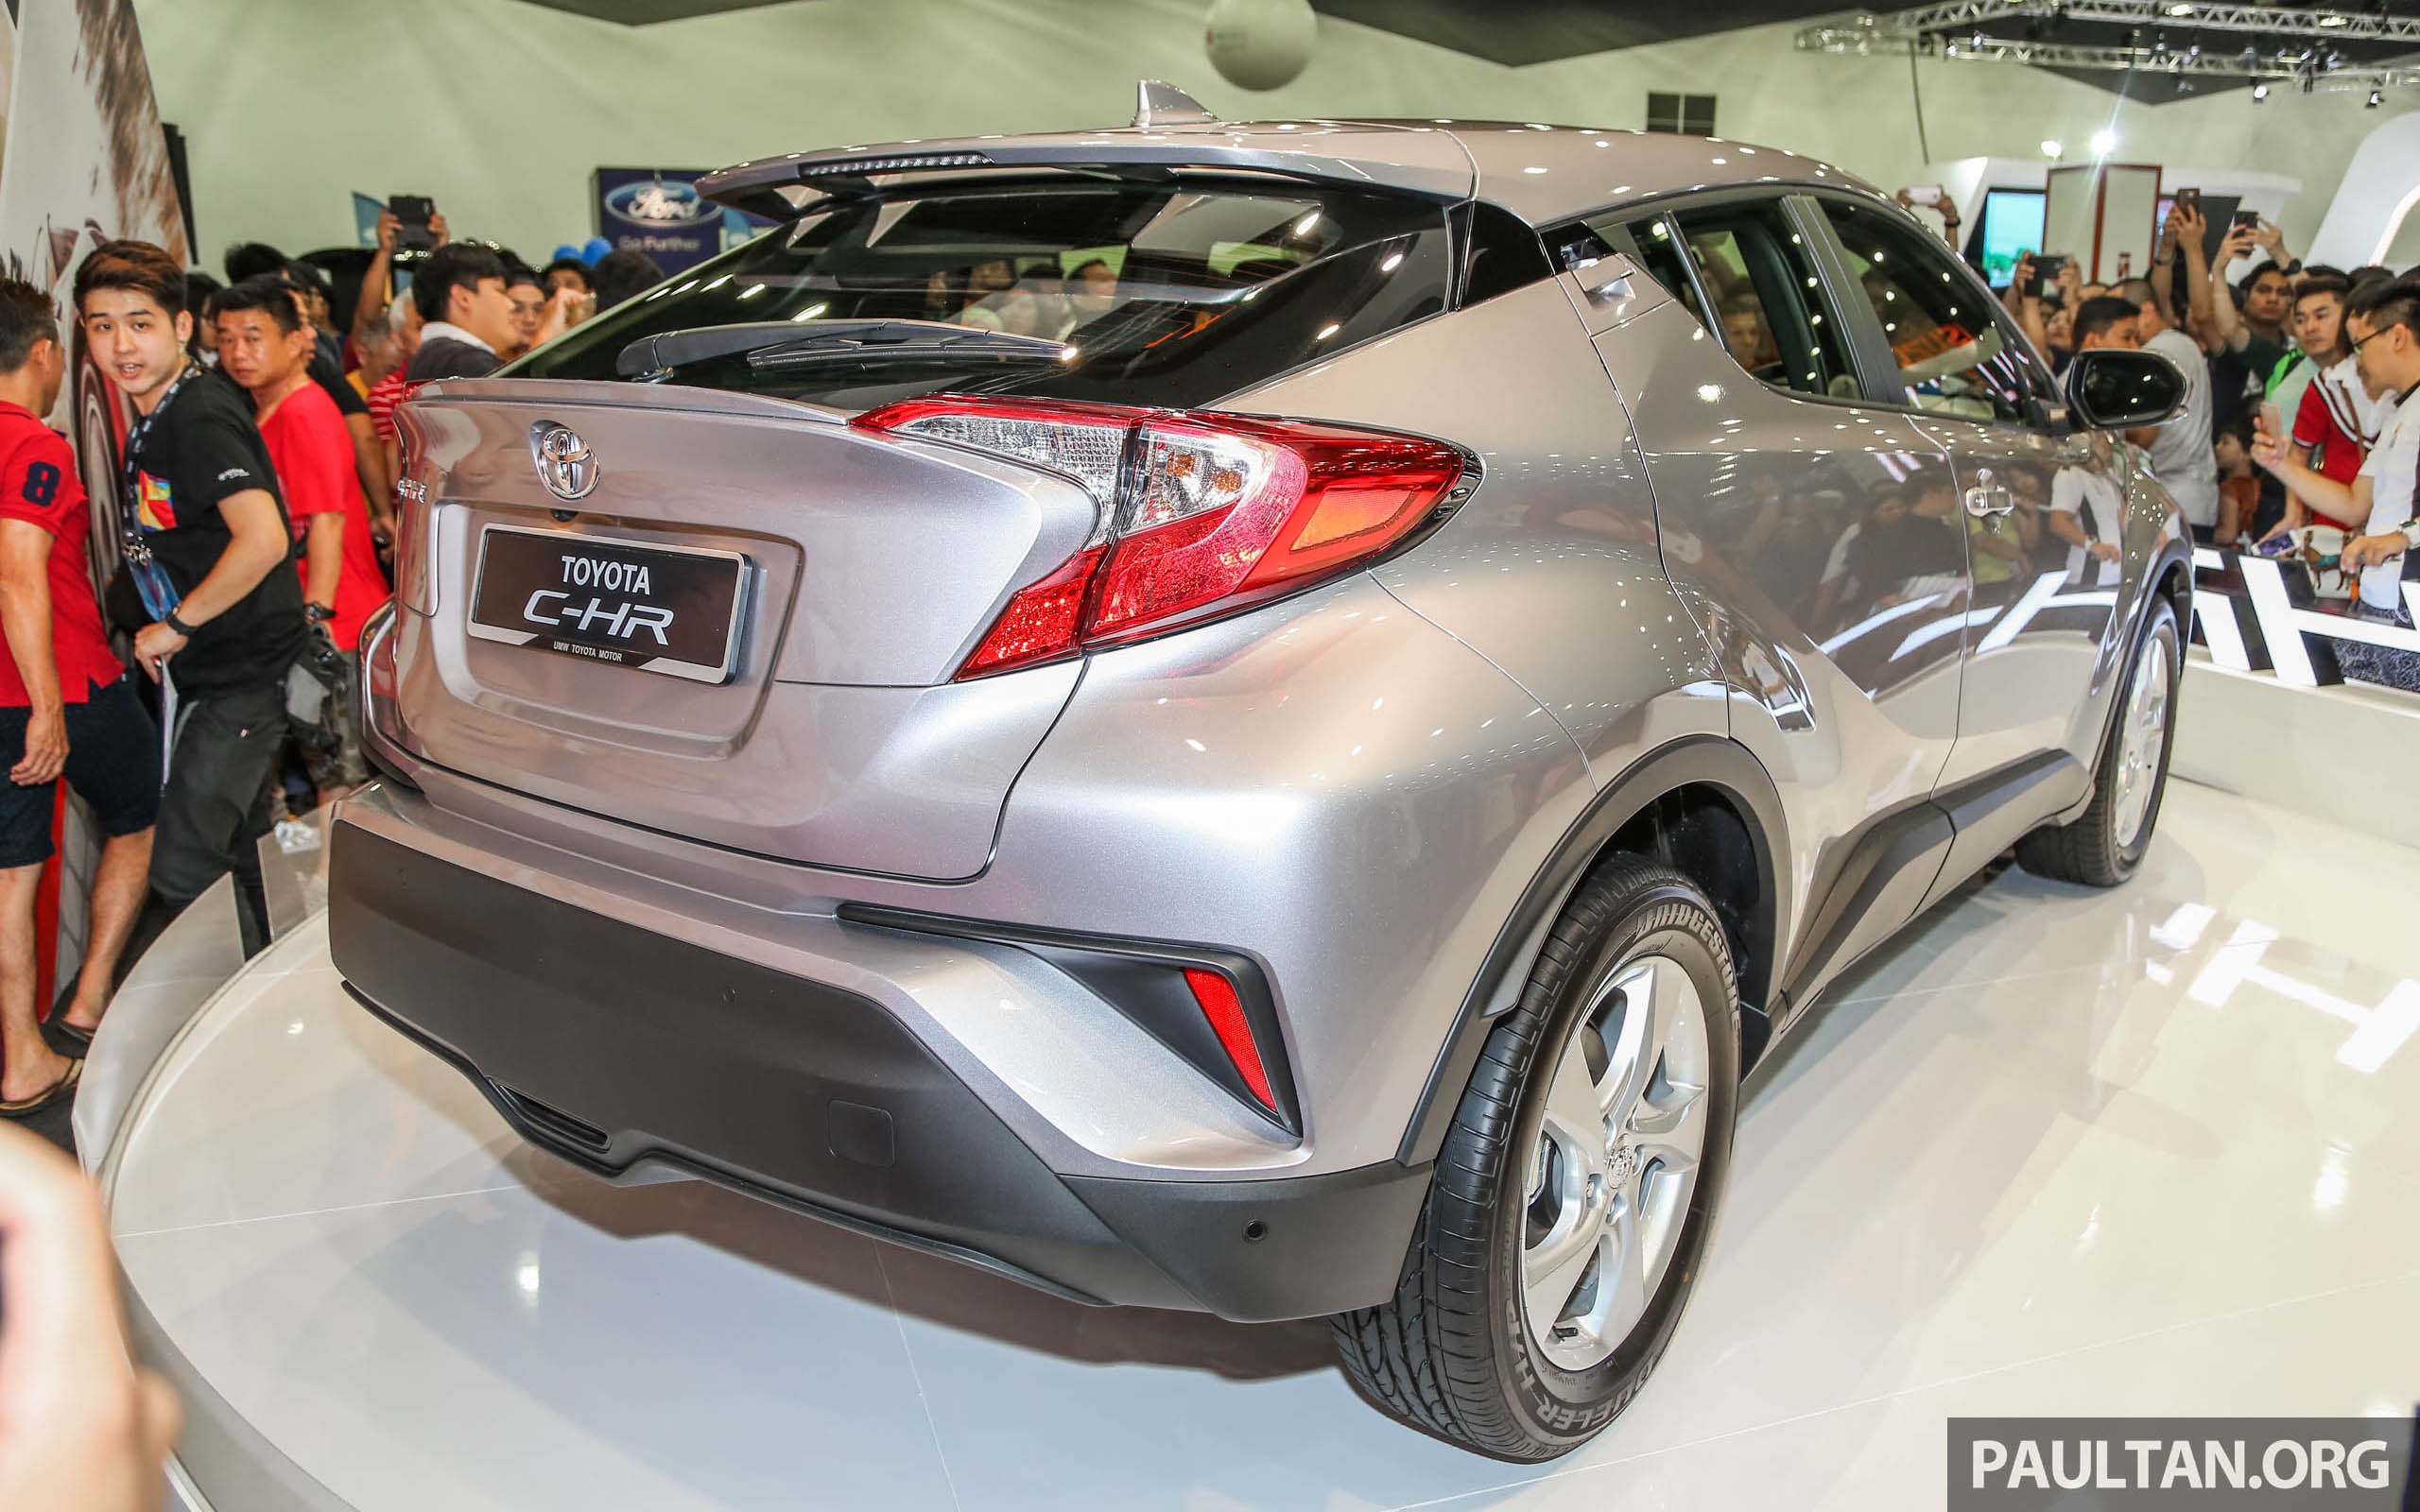 toyota c-hr here in malaysia for first official preview